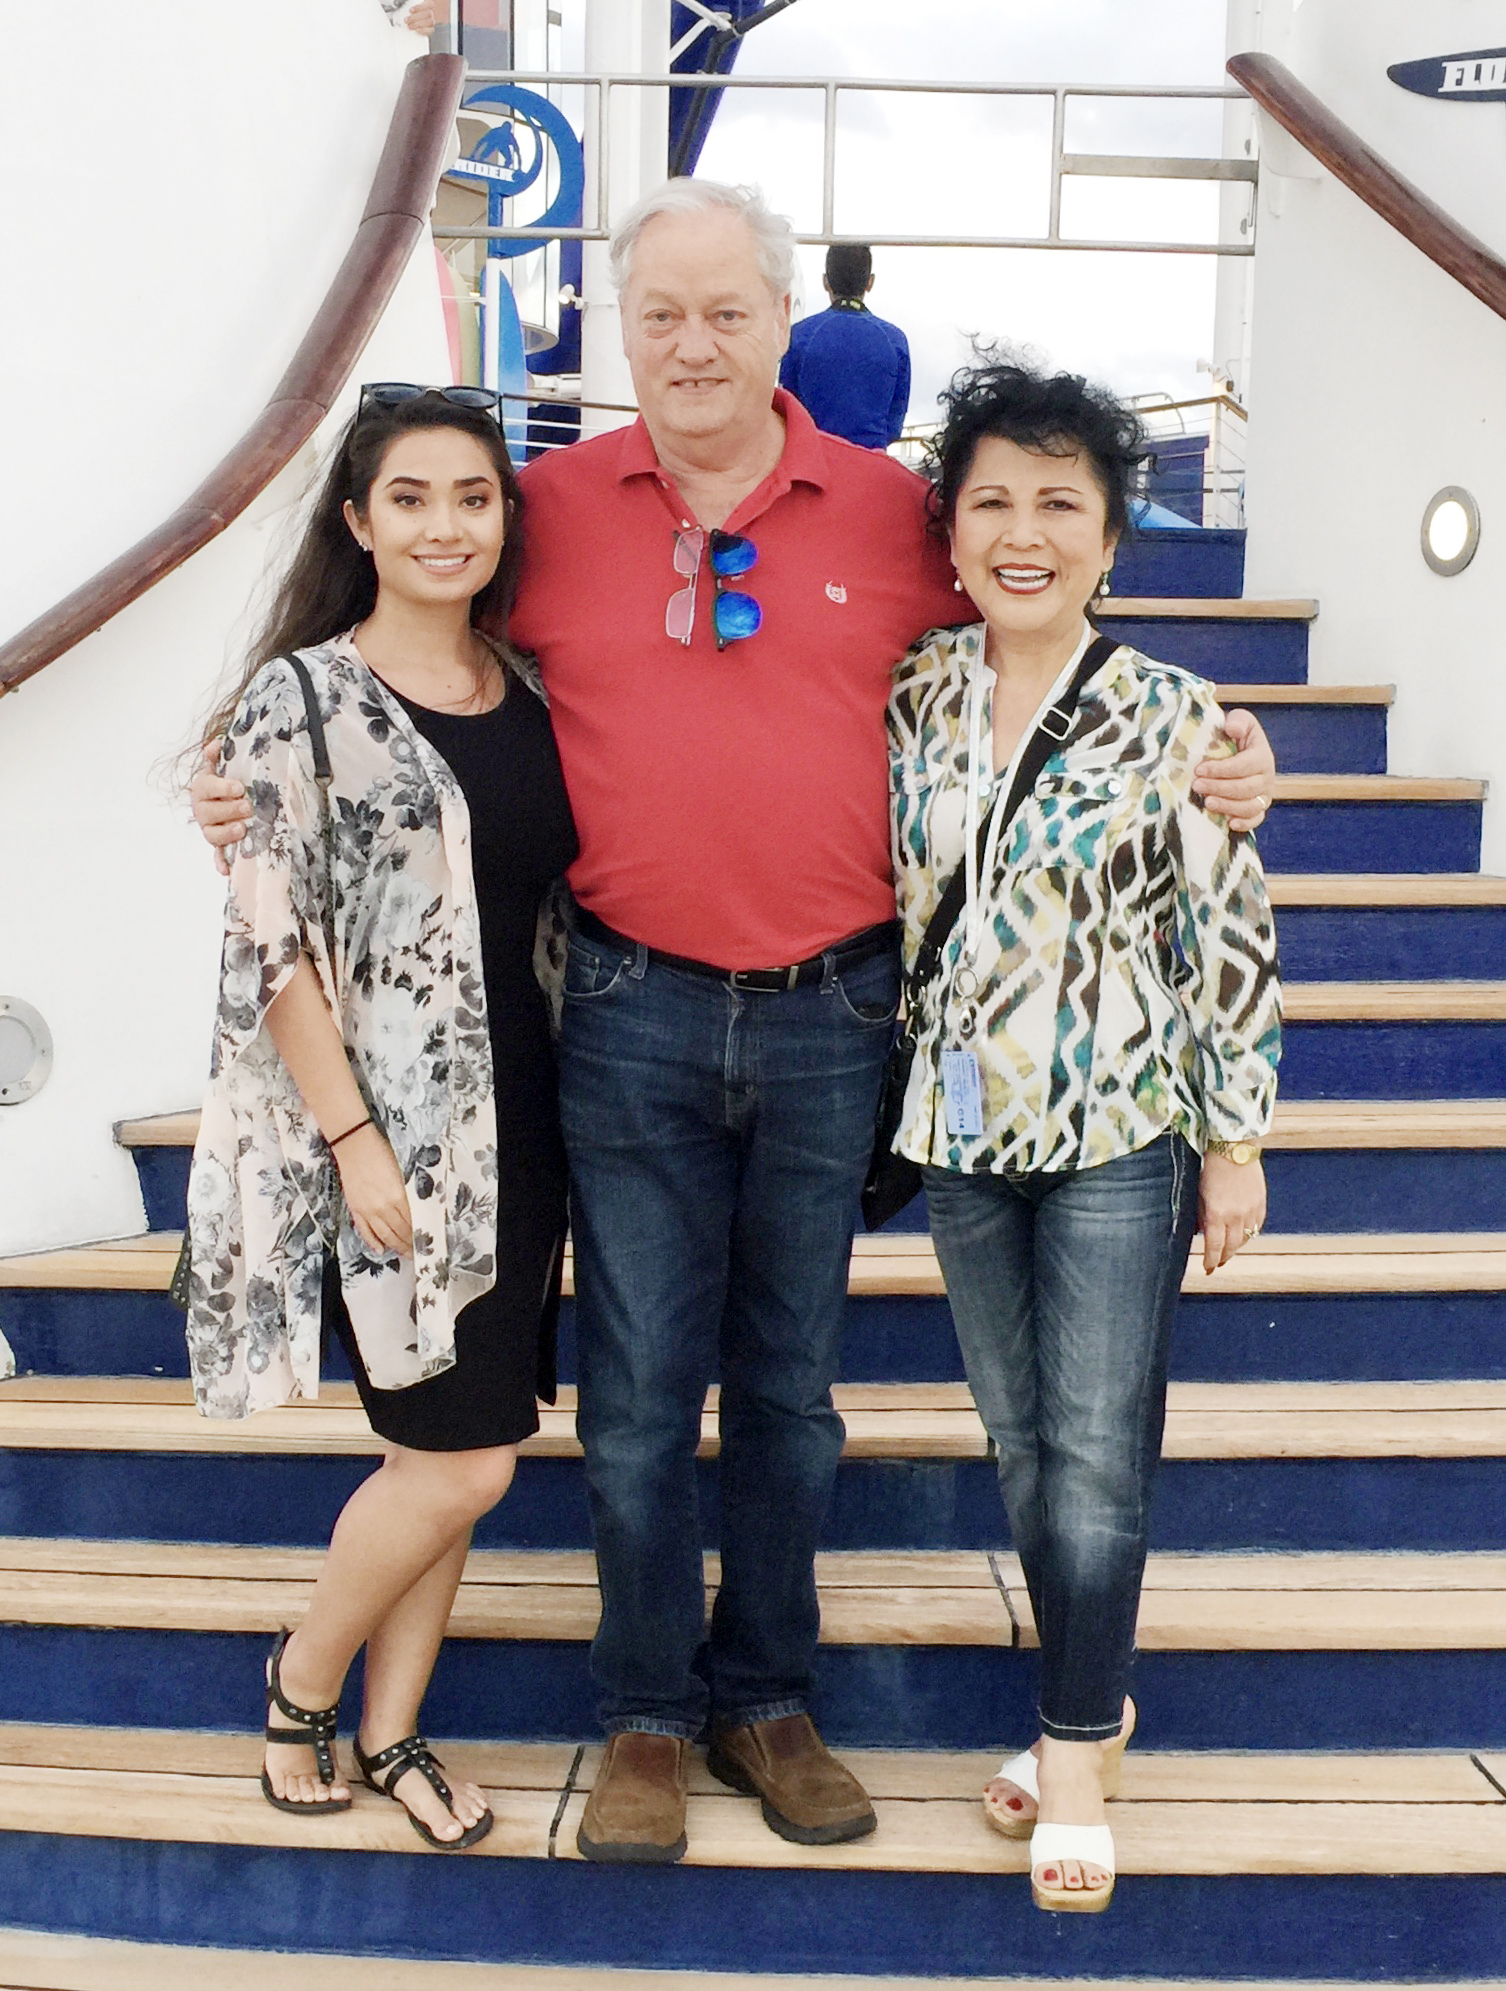 Yulin with her daughter, Shannon, and husband, Jerry, while on a cruise to the Caribbean in December 2017.